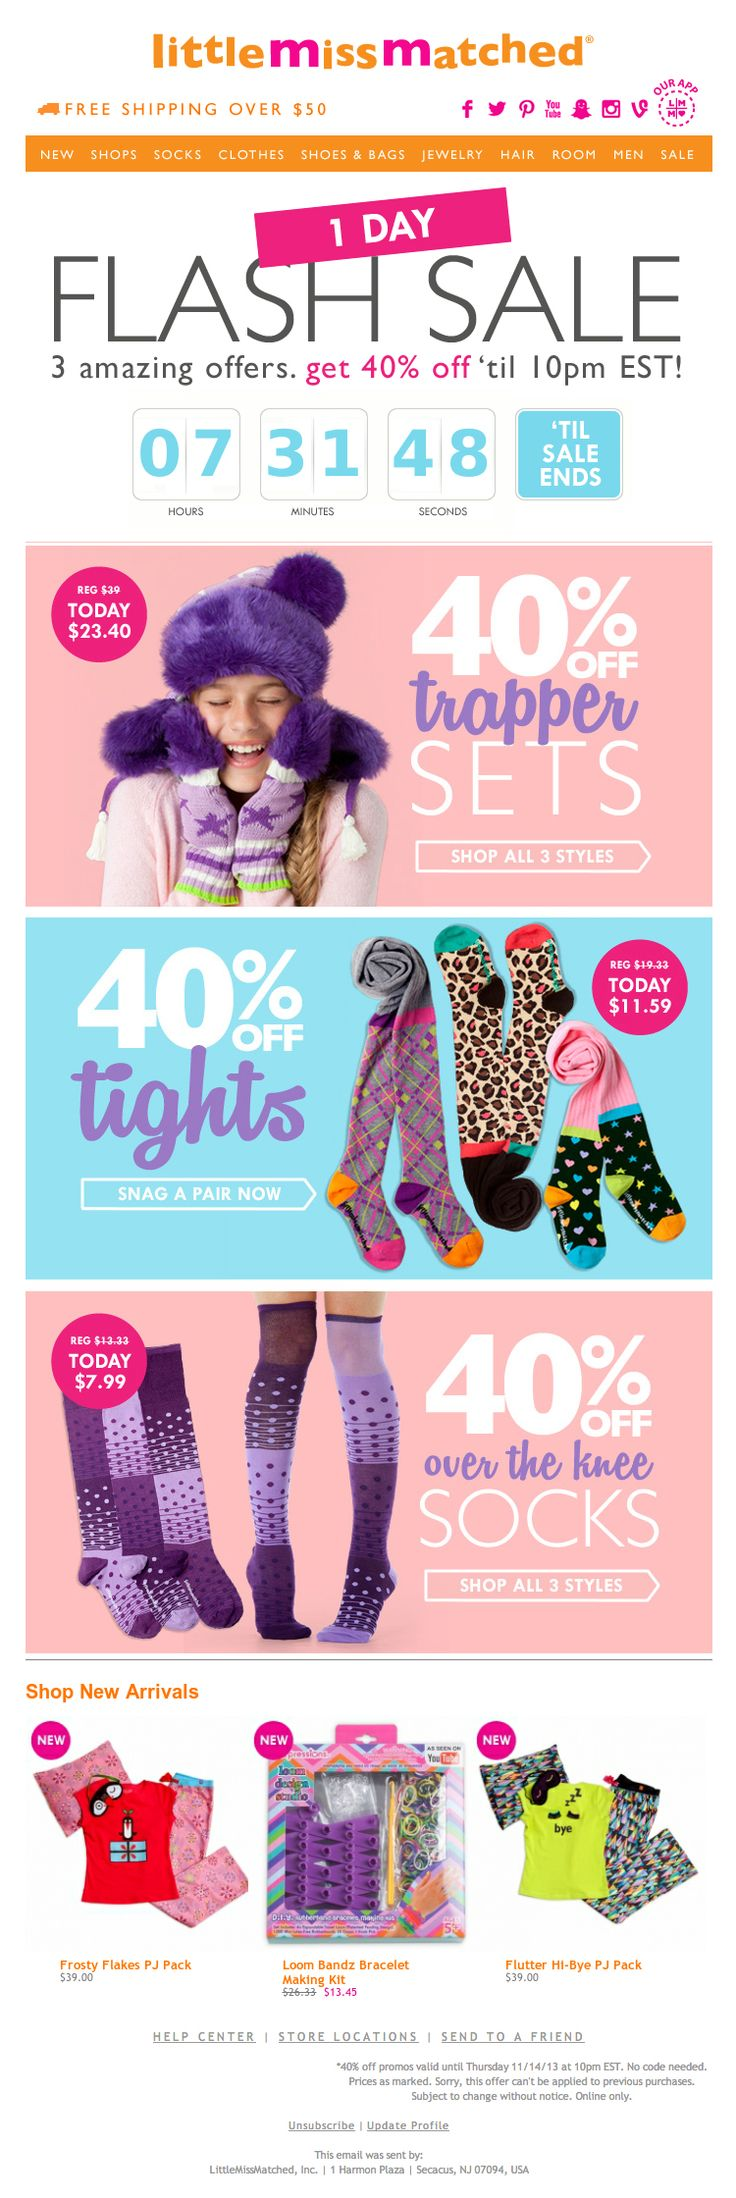 """Little Miss Matched used a live countdown timer to promote a 1-day flash sale. The """"Shop New Arrivals"""" section was a live web crop of the latest inventory available online. Social media icons deep-linked to the respective apps when the email was viewed on a mobile device."""